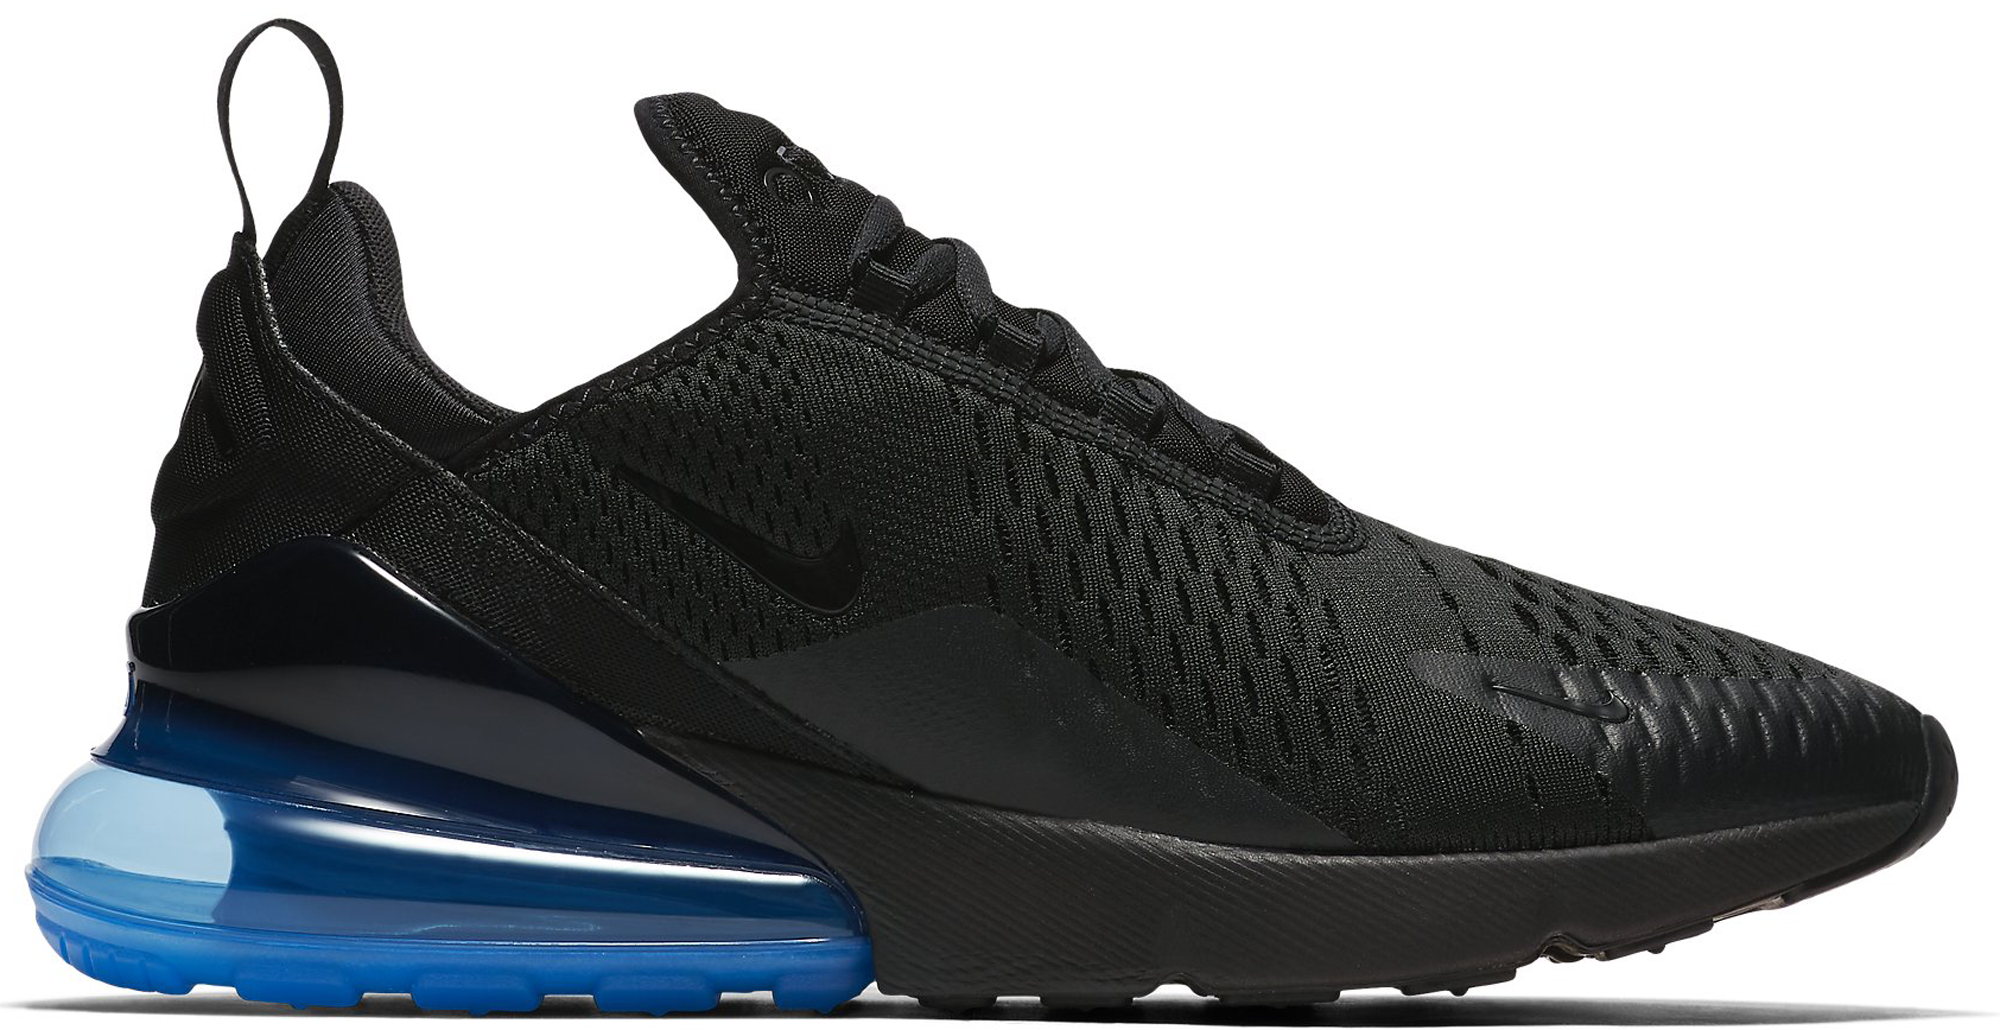 quality design 99756 f4bf1 Black and Blue Air Max